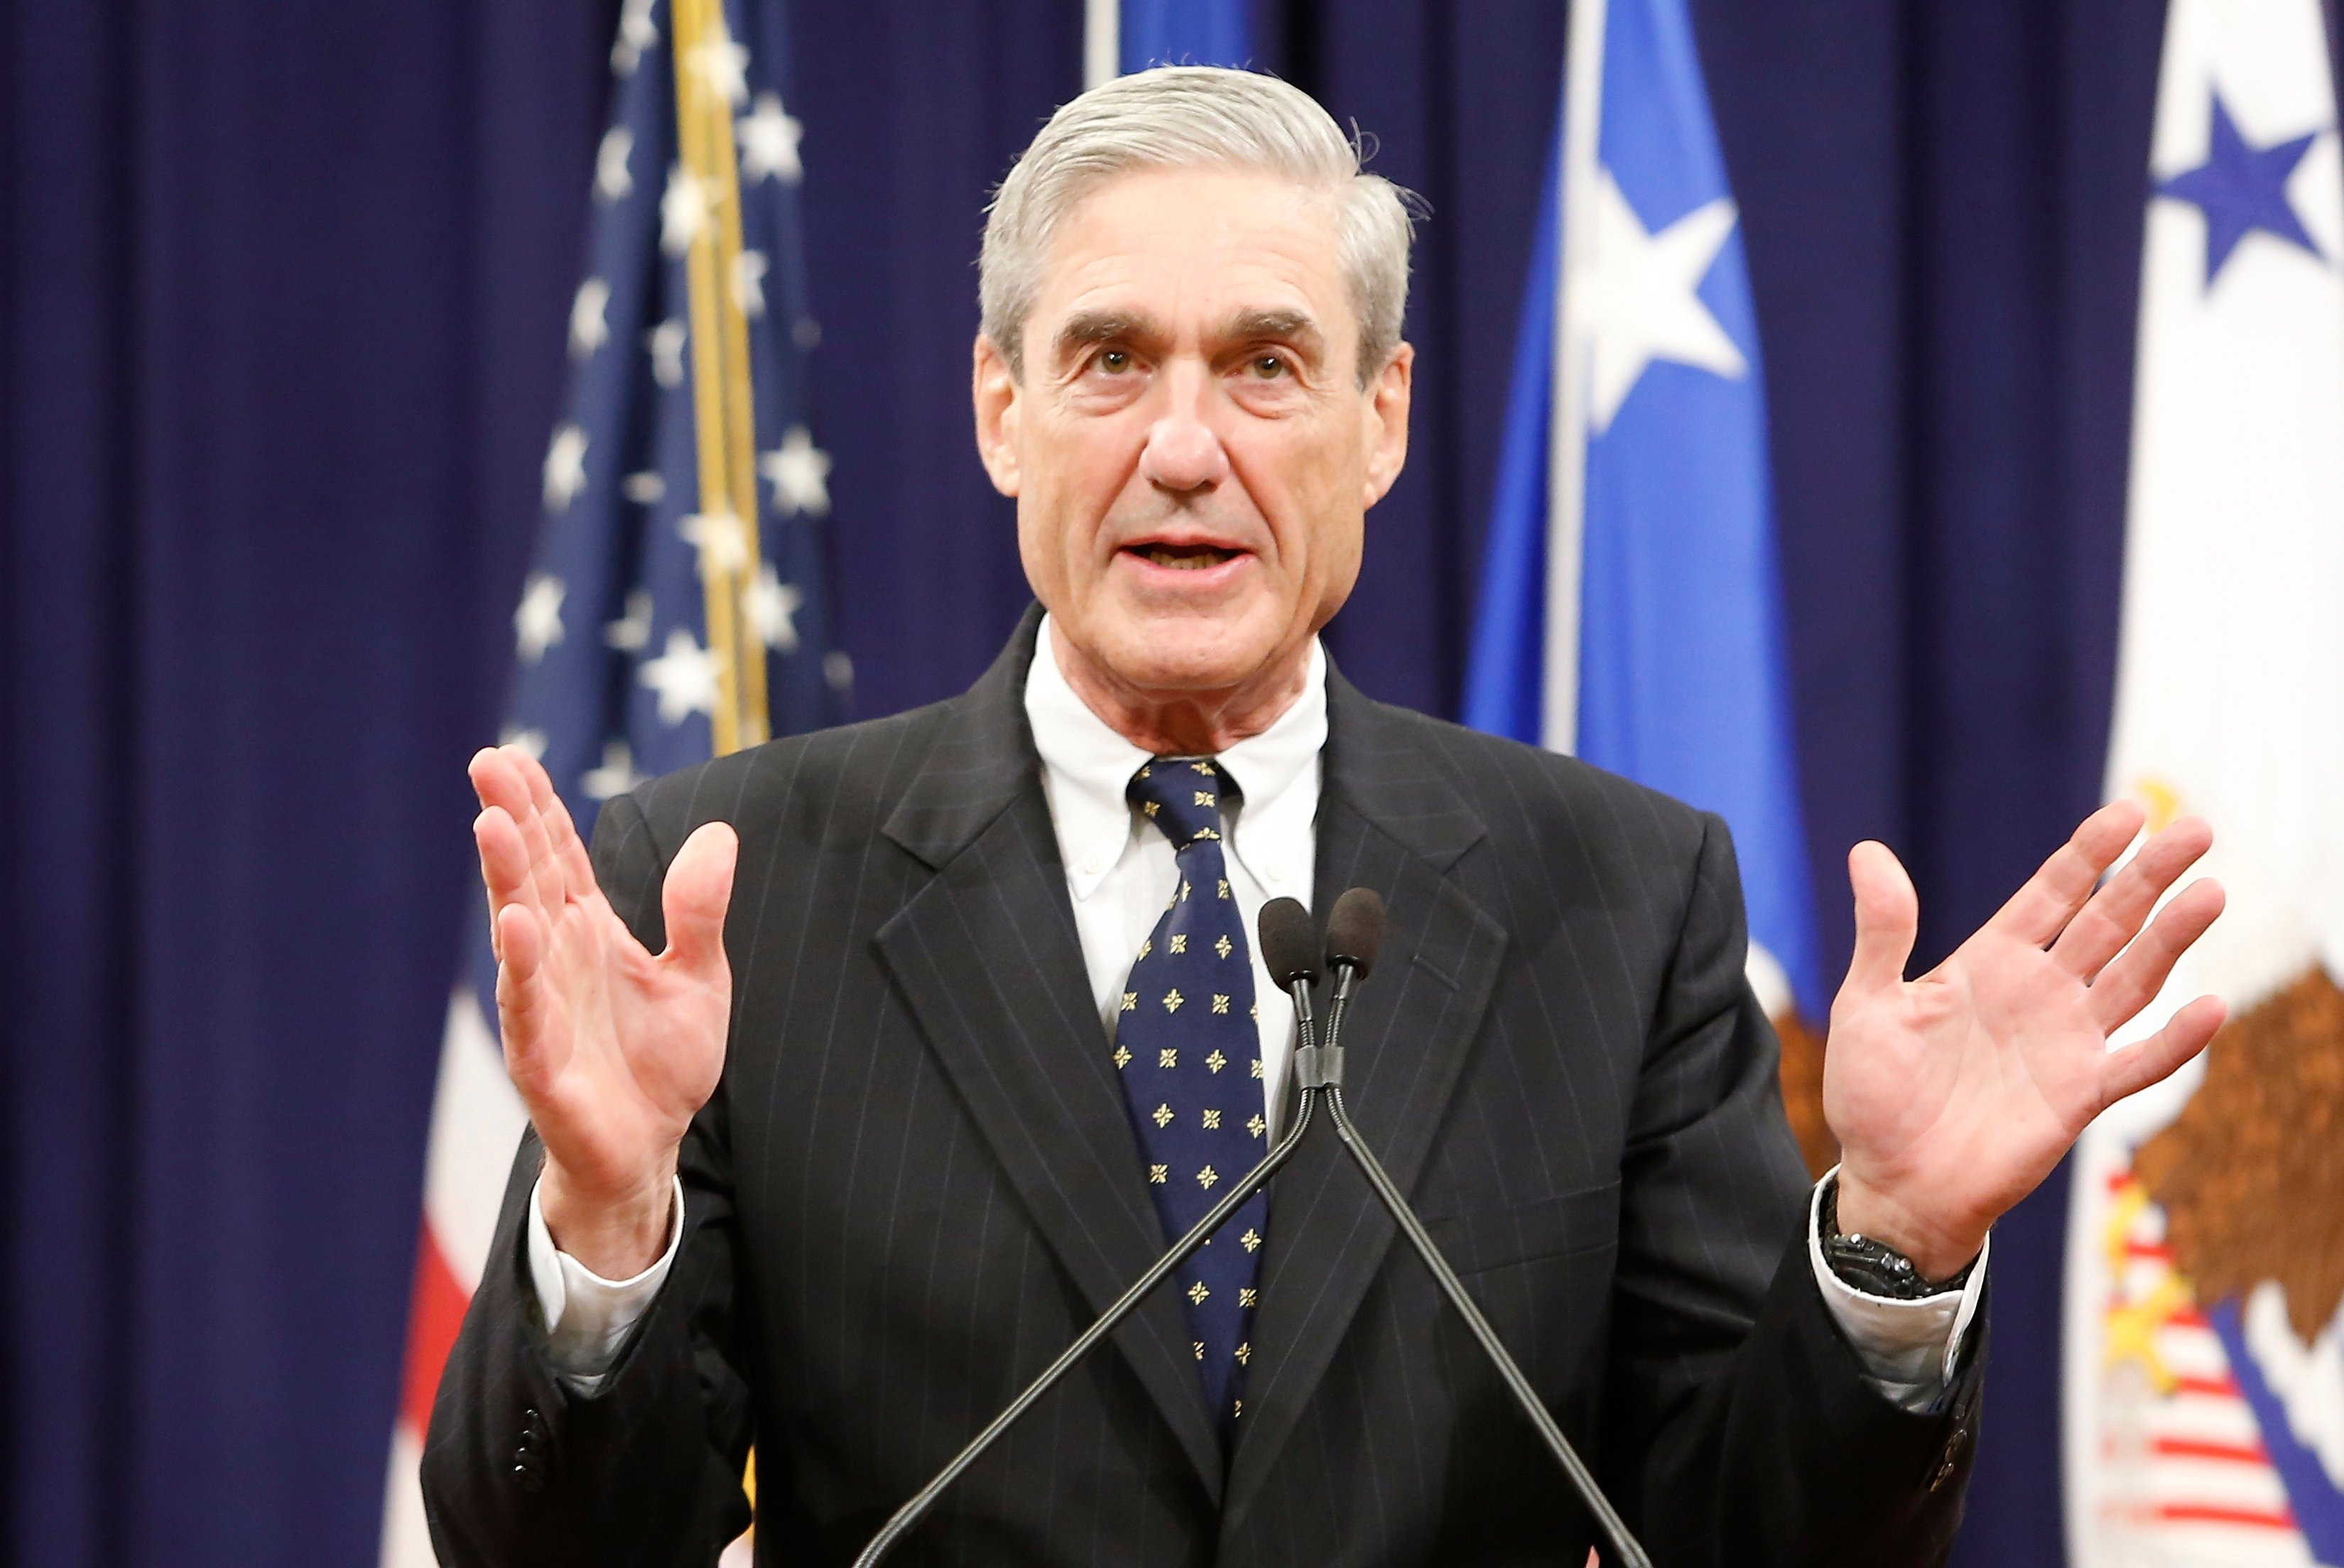 Robert Mueller reacts to applause from the audience during his farewell ceremony at the Justice Department in Washington, August 1, 2013. REUTERS/Jonathan Ernst